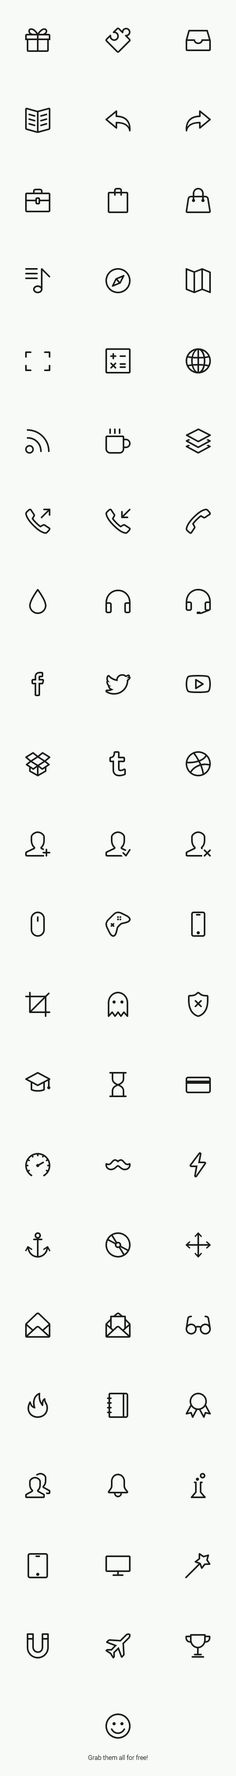 Simple Line Icons (Free PSD, Webfont) by GraphicBurger: